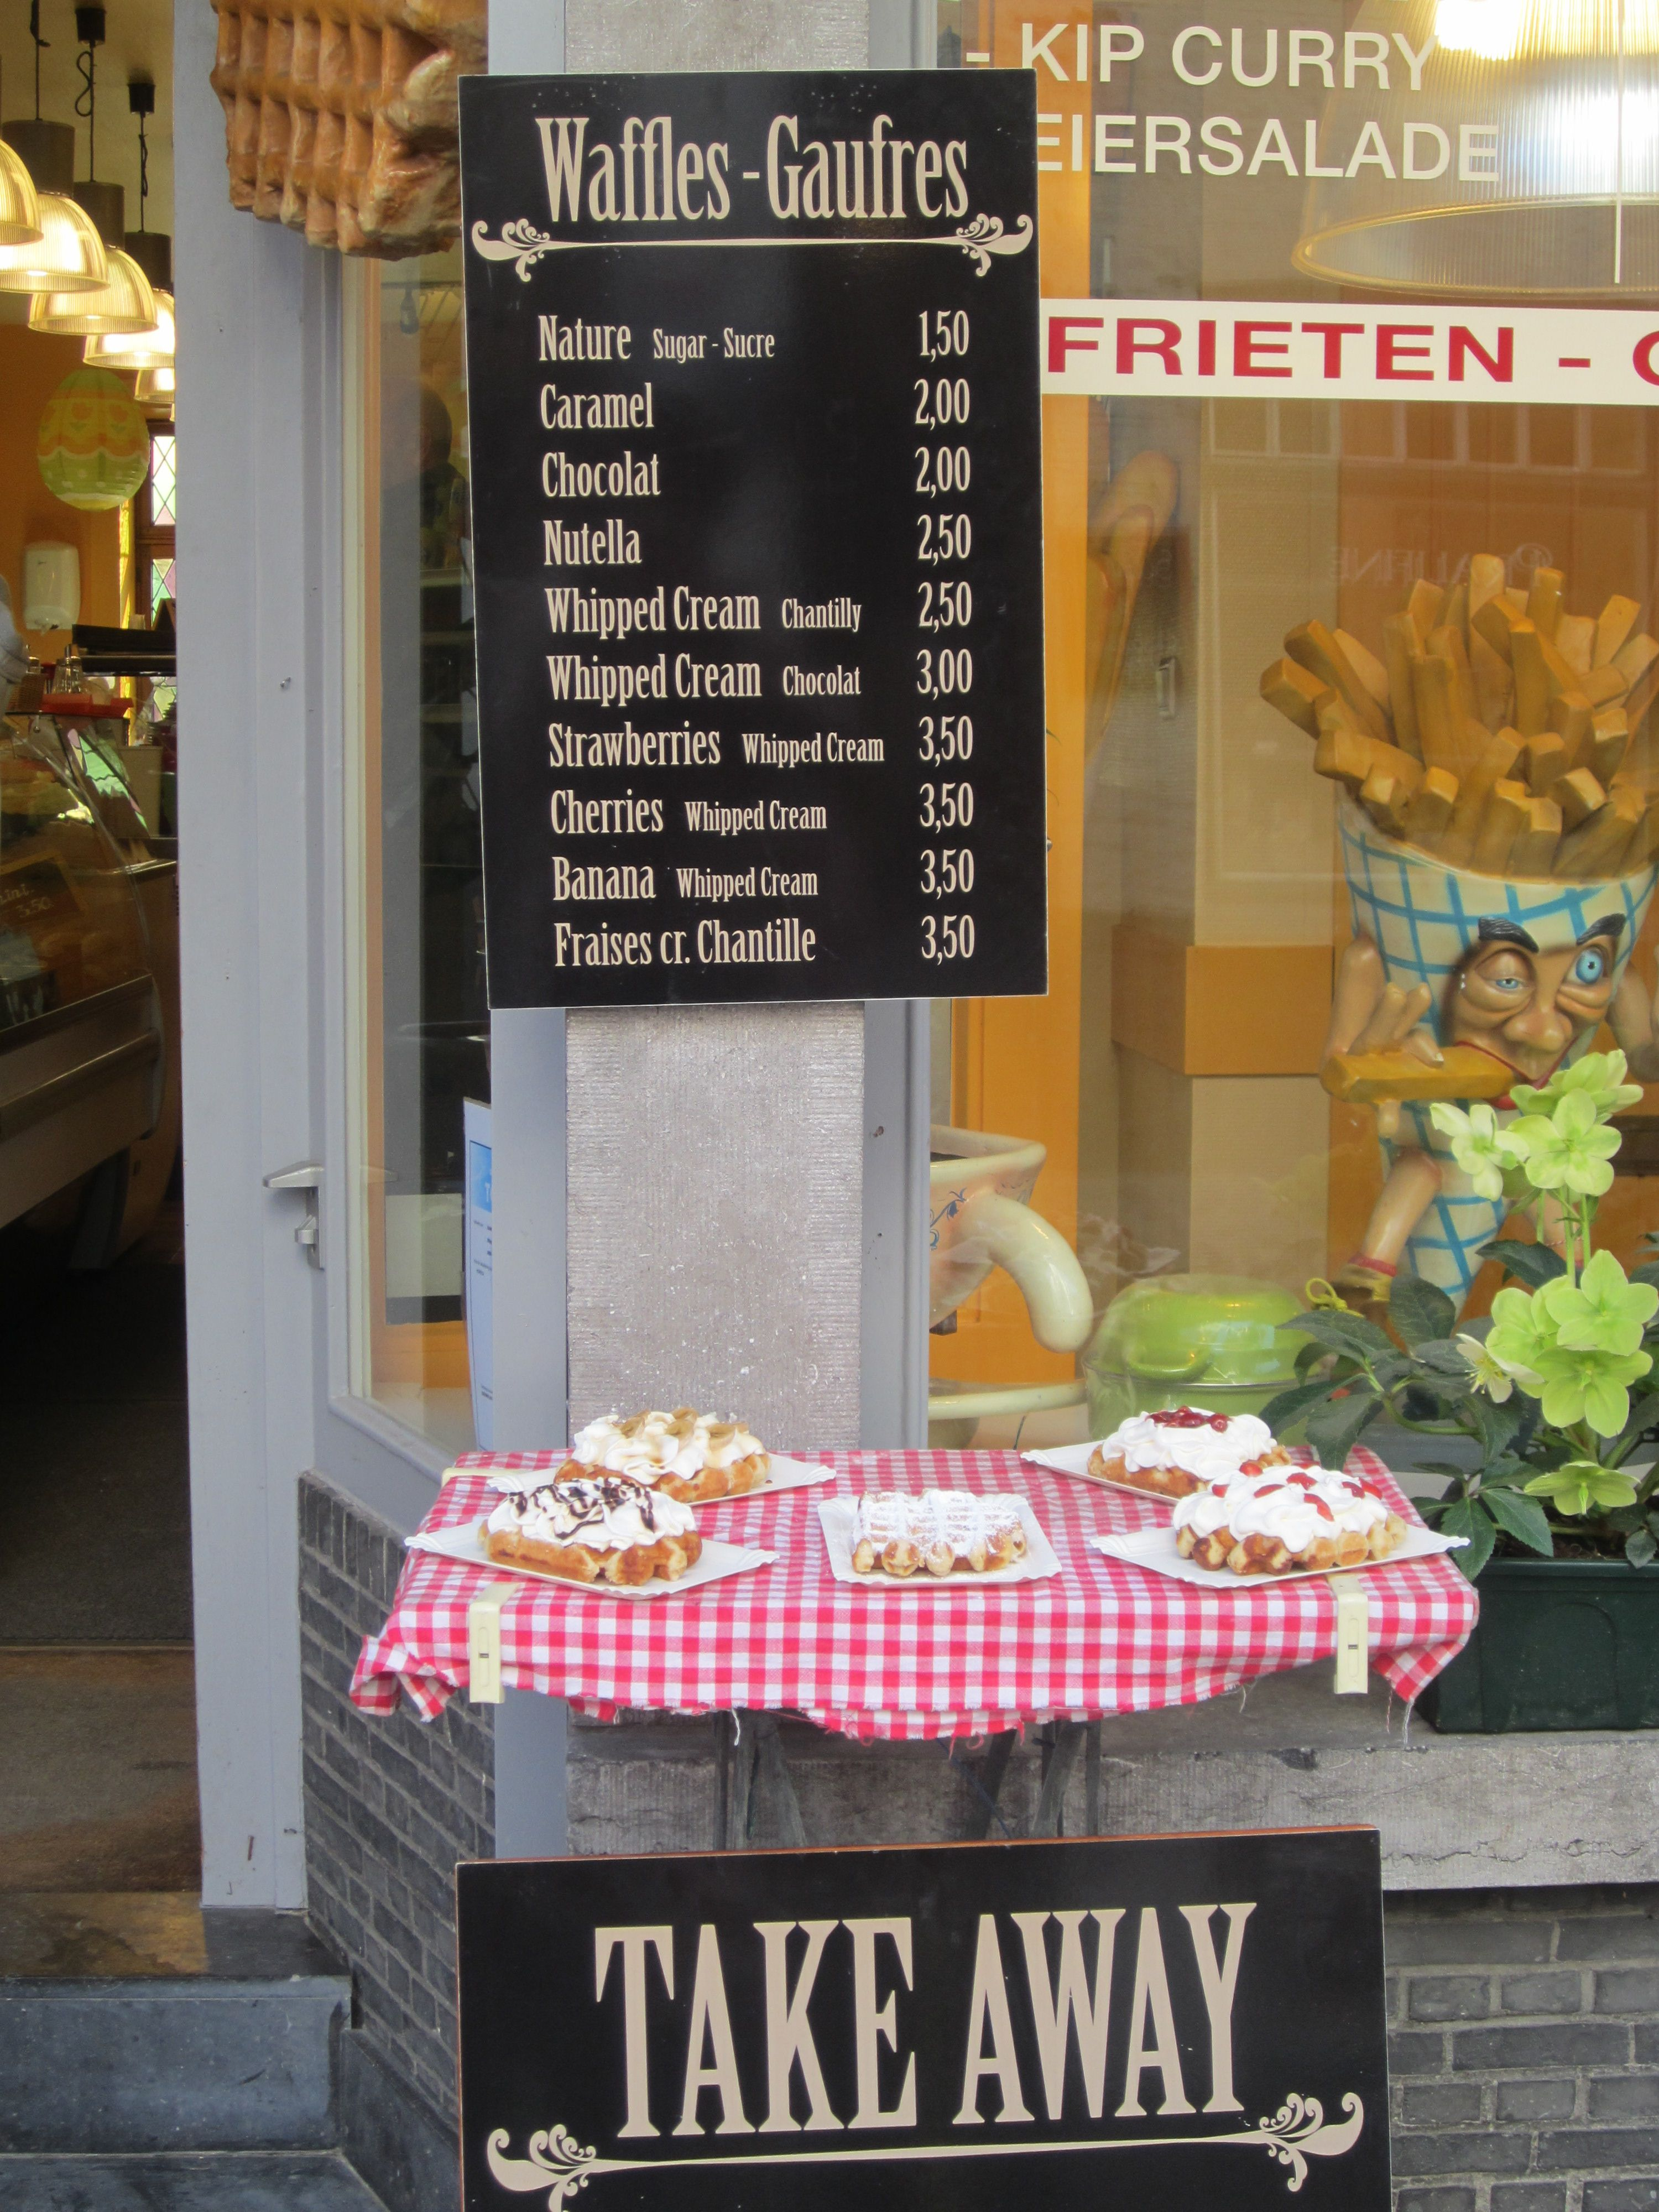 Brugges, Belgium.  Nothing better than the waffles and fries (they put mayonnaise on the fries).